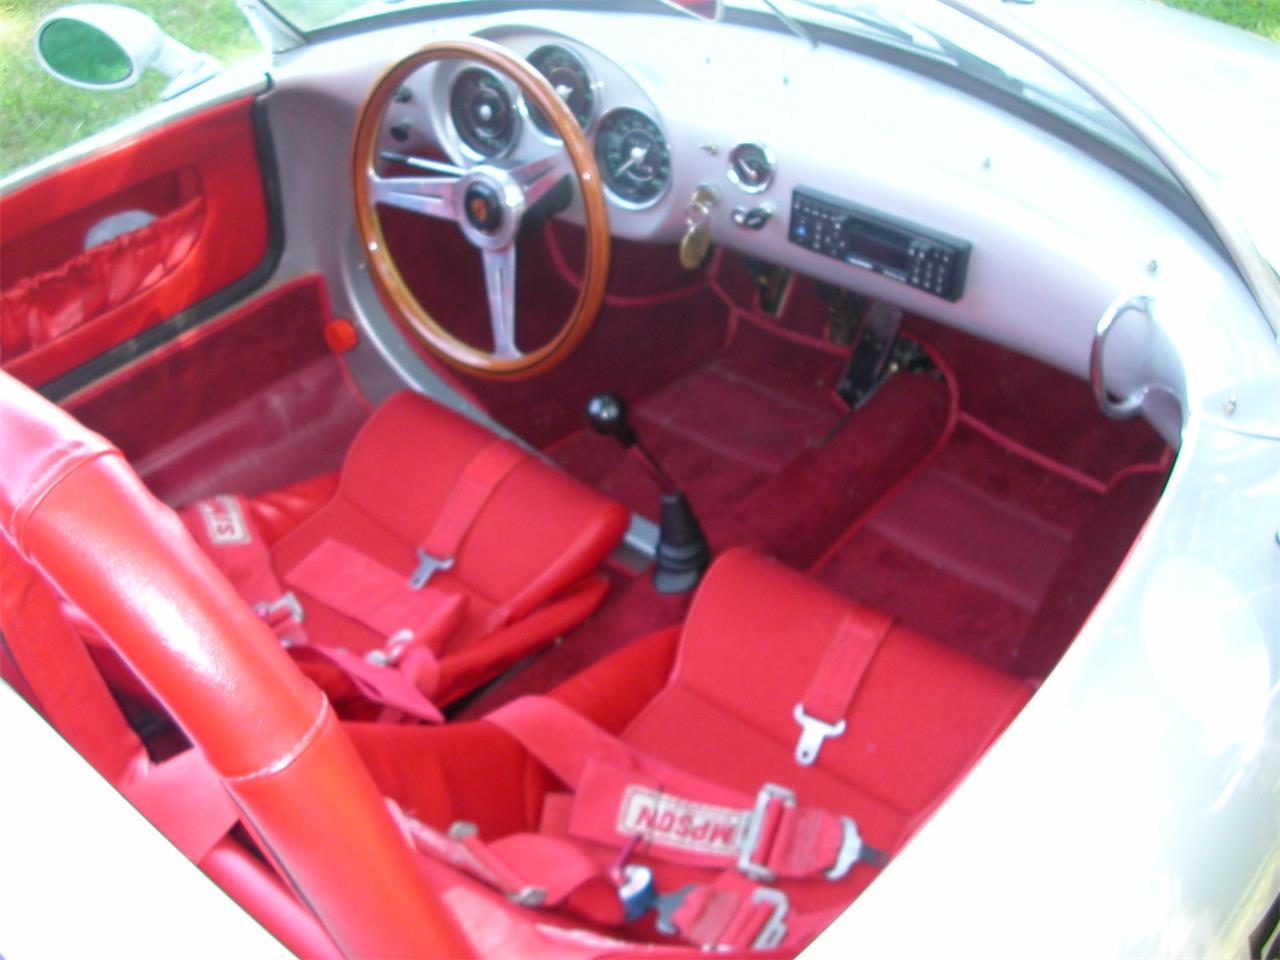 Large Picture of Classic '55 Porsche 550 Spyder Replica - $31,000.00 - LBBR